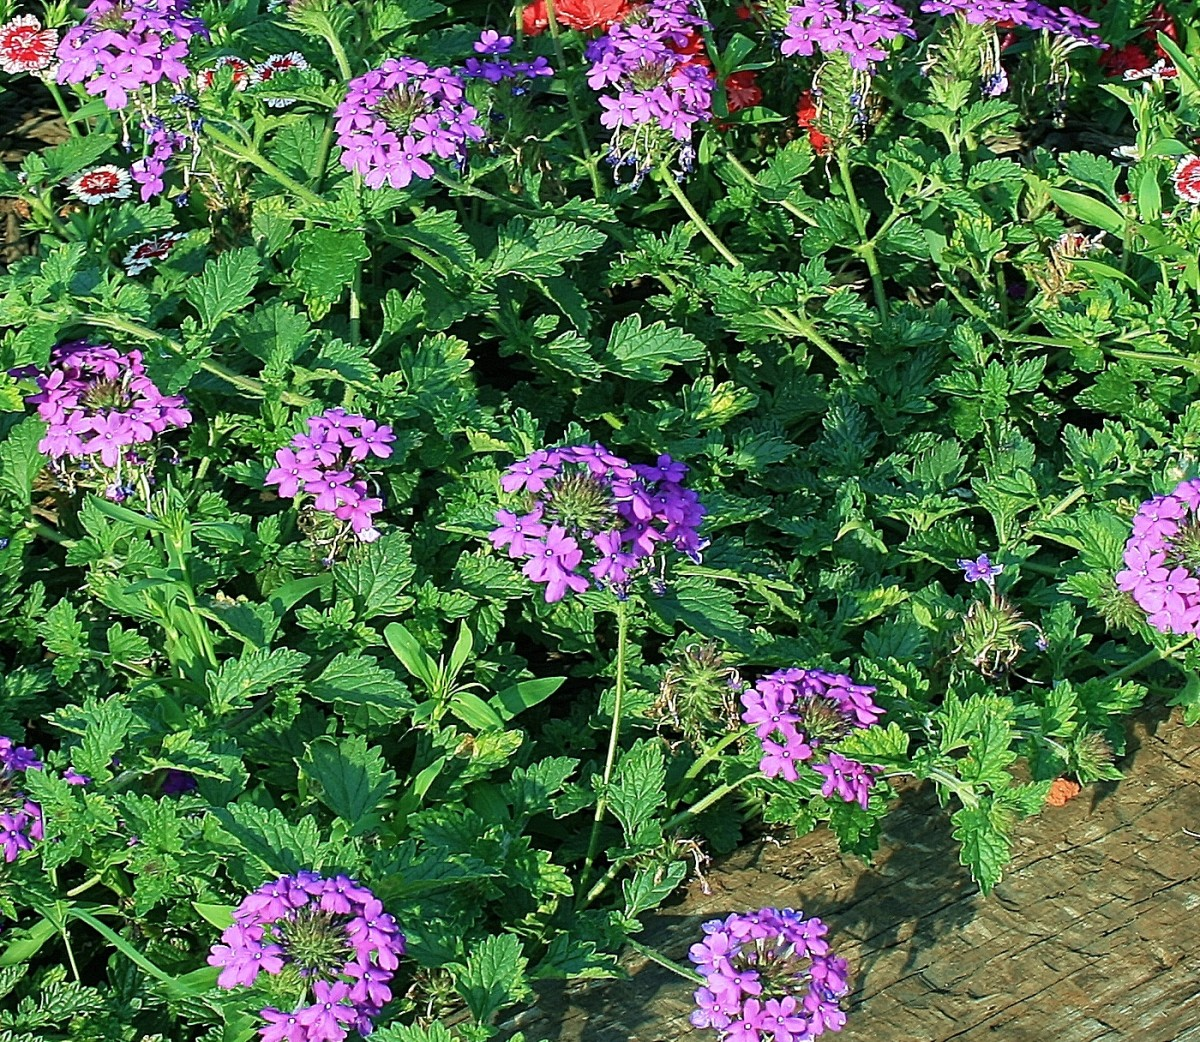 Homestead Purple's flowers are a vibrant, eye-catching lavender.